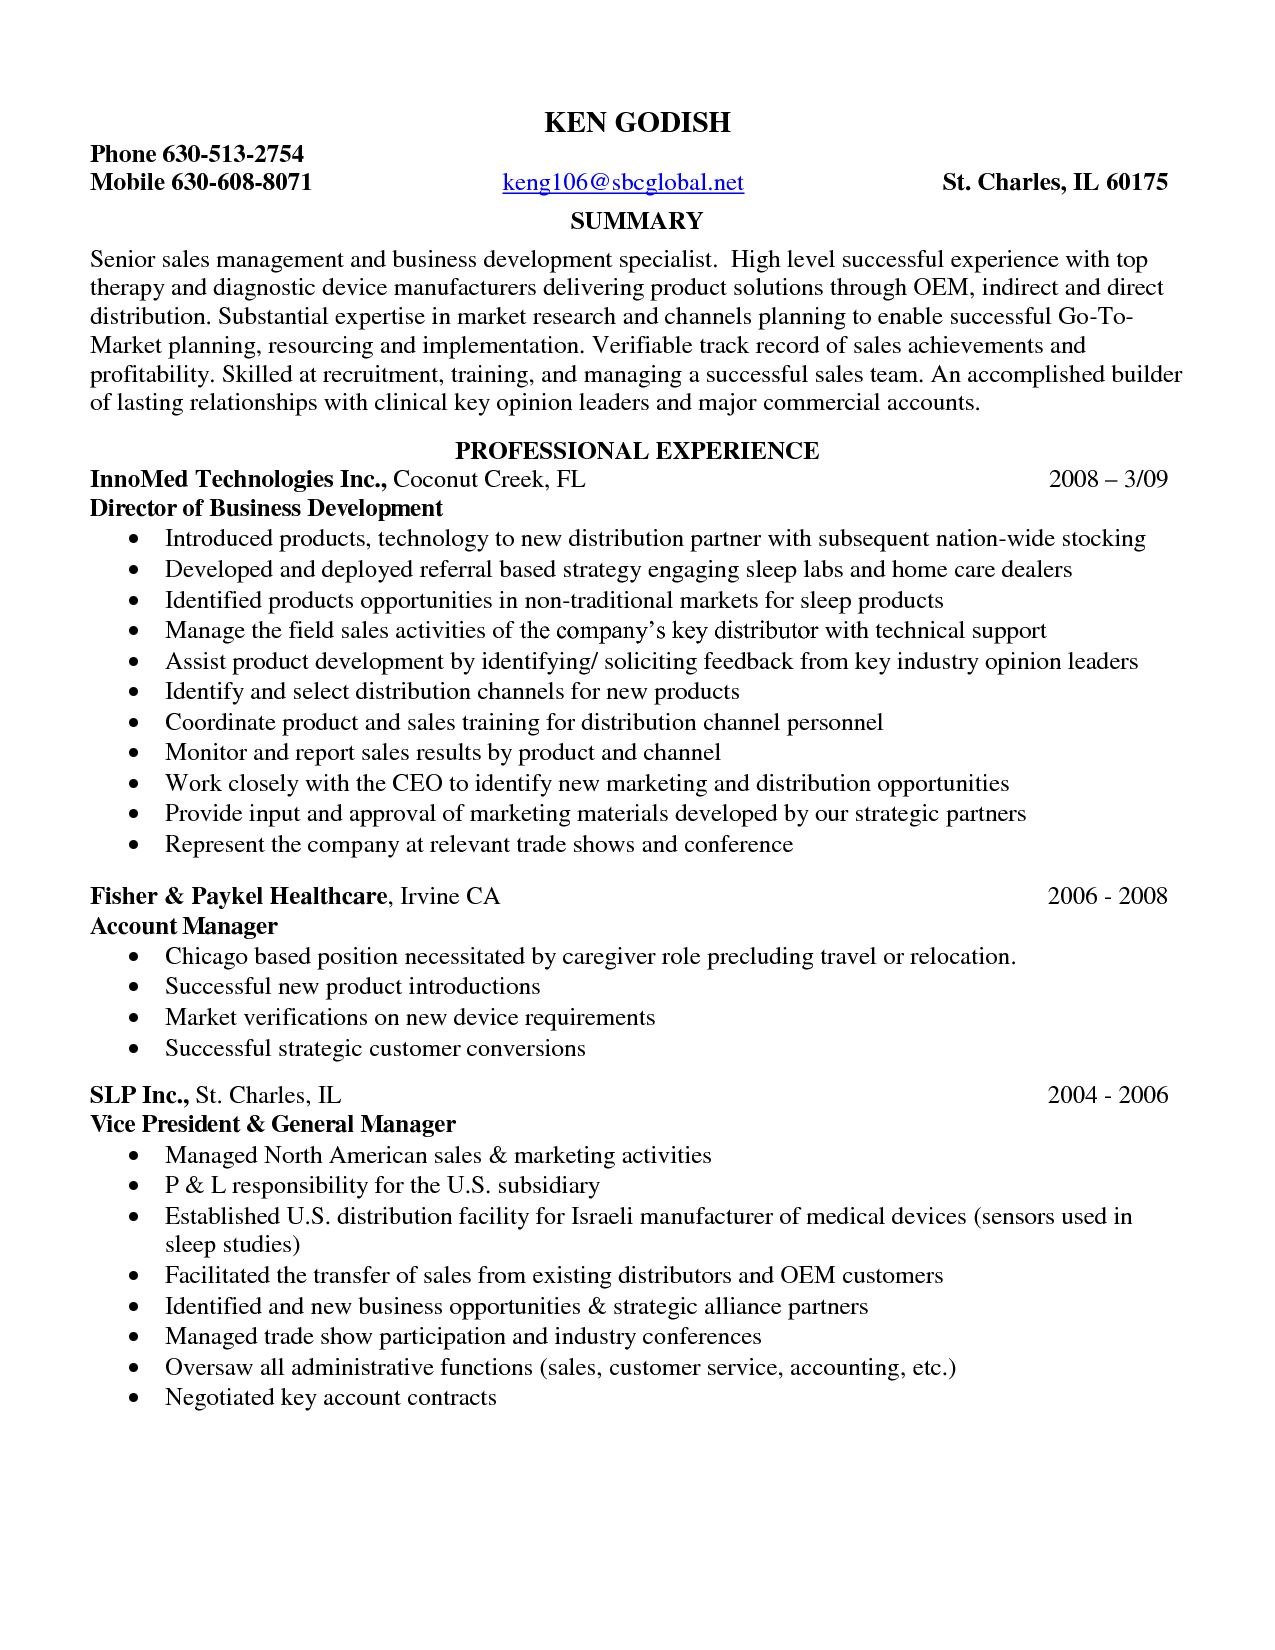 Medical Device Sales Resume Sample Resume Entry Level Pharmaceutical Sales Sample Resume Entry